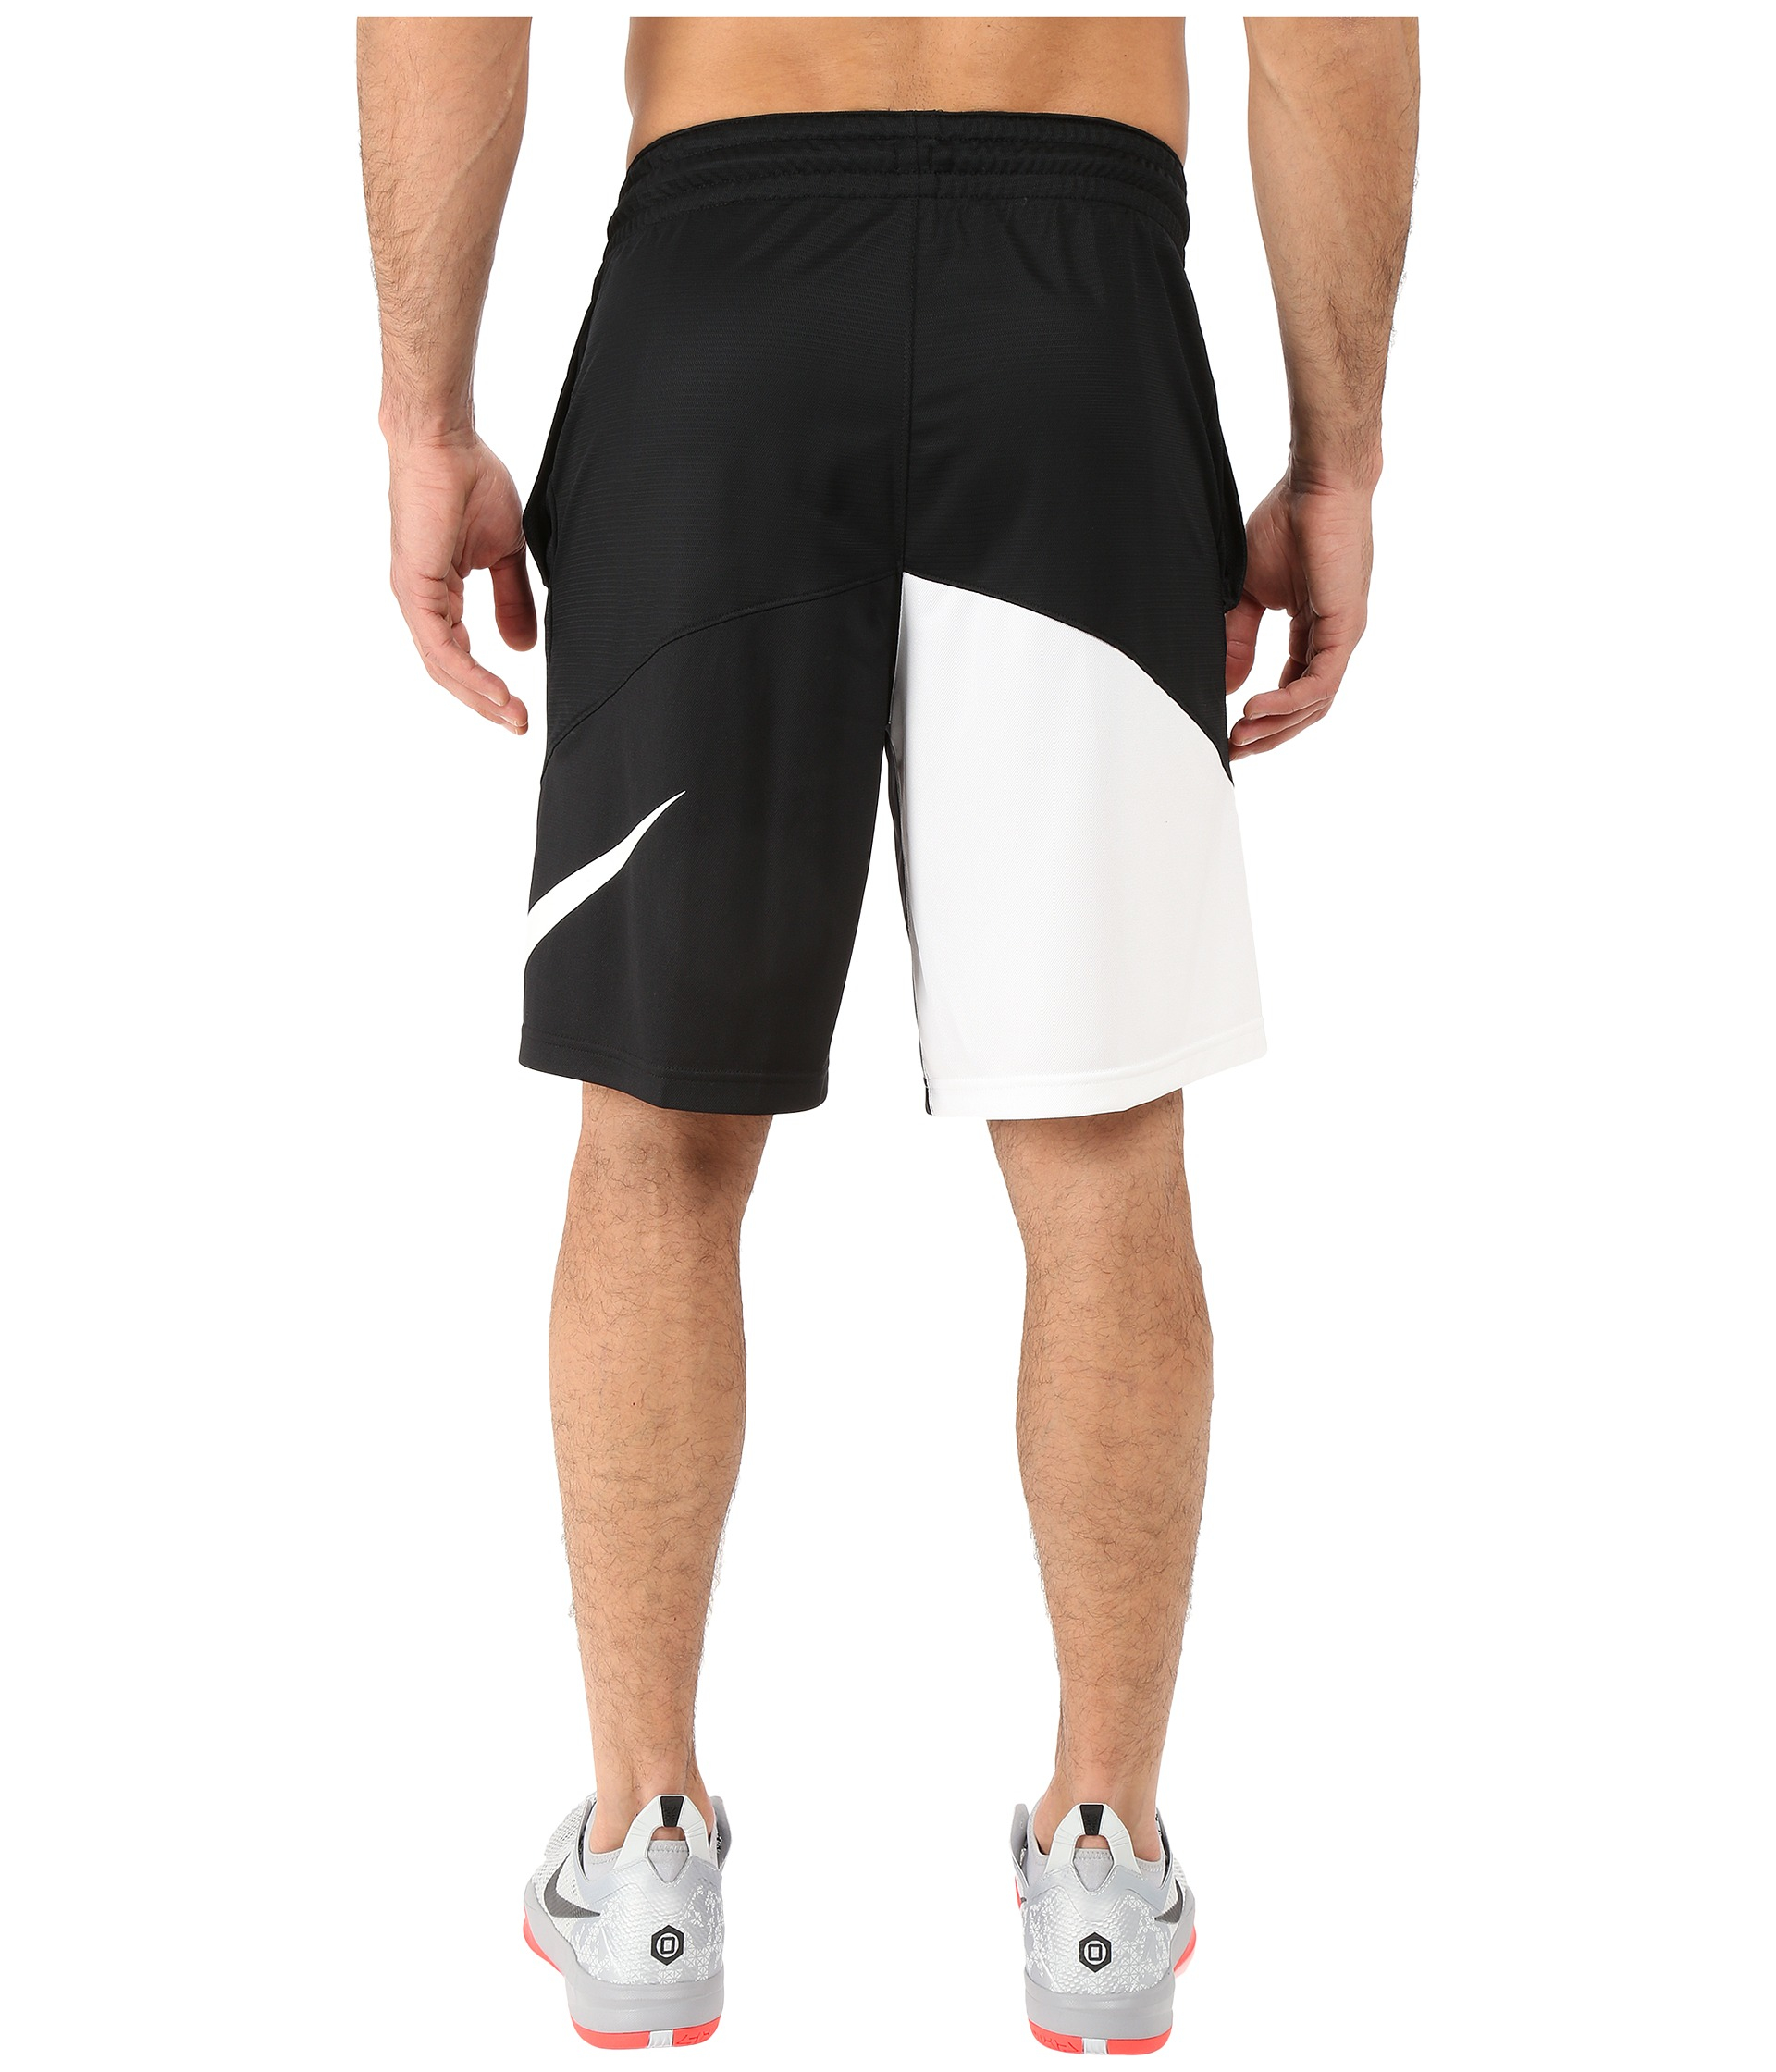 Nike Hbr Shorts In Black For Men Lyst